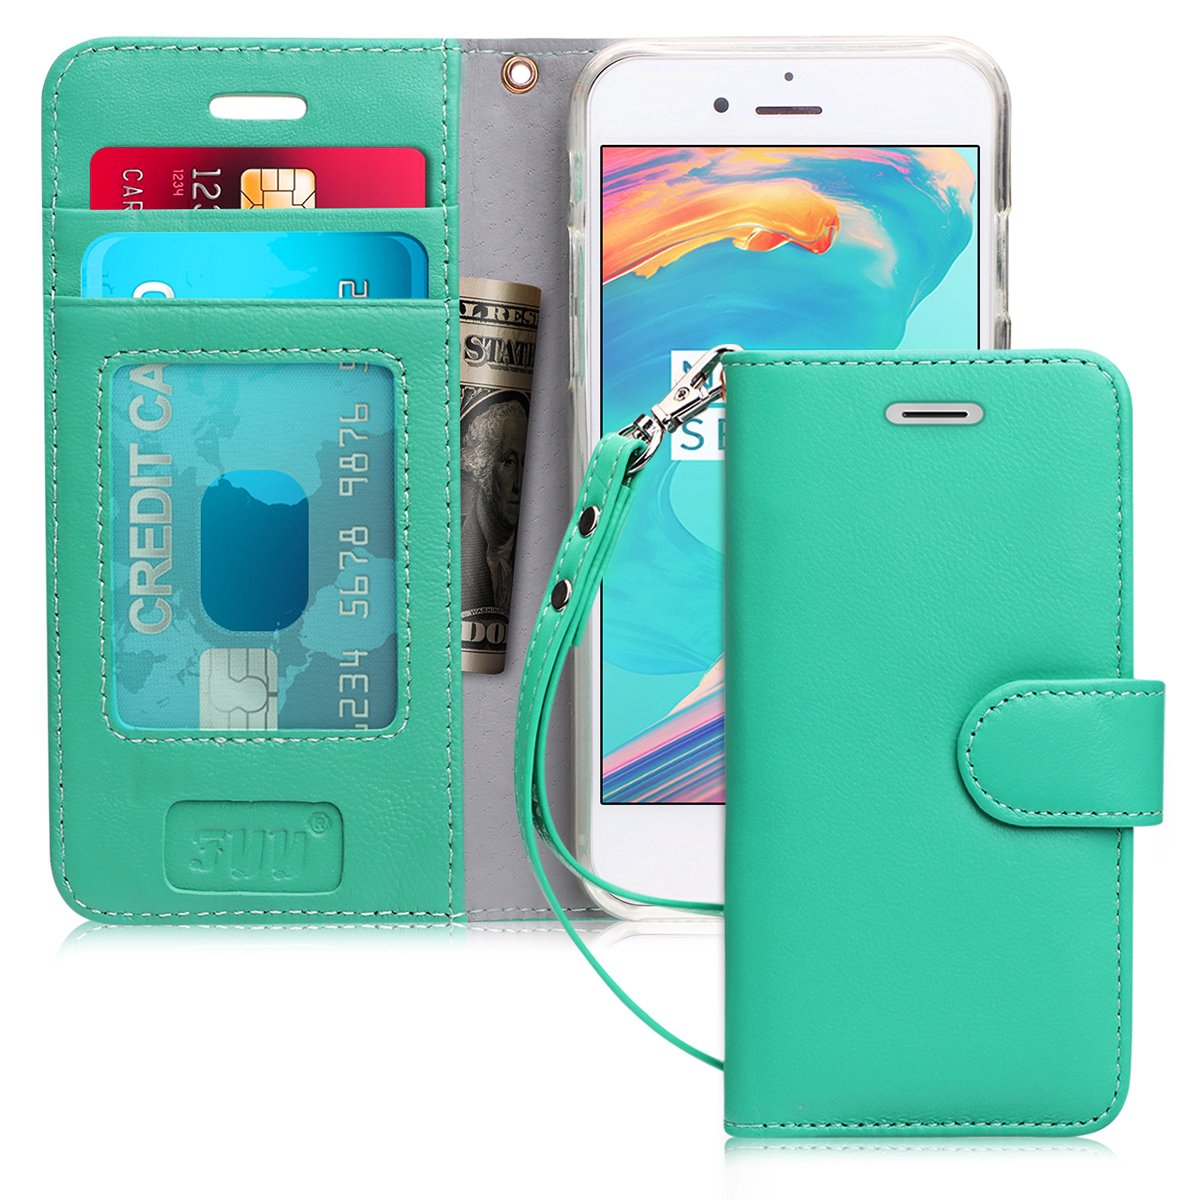 FYY Case for iPhone 7/iPhone 8, [Kickstand Feature] Flip Folio Genuine Leather Wallet Case with ID and Credit Card Pockets for Apple iPhone 8/7 (4.7'') Mint Green